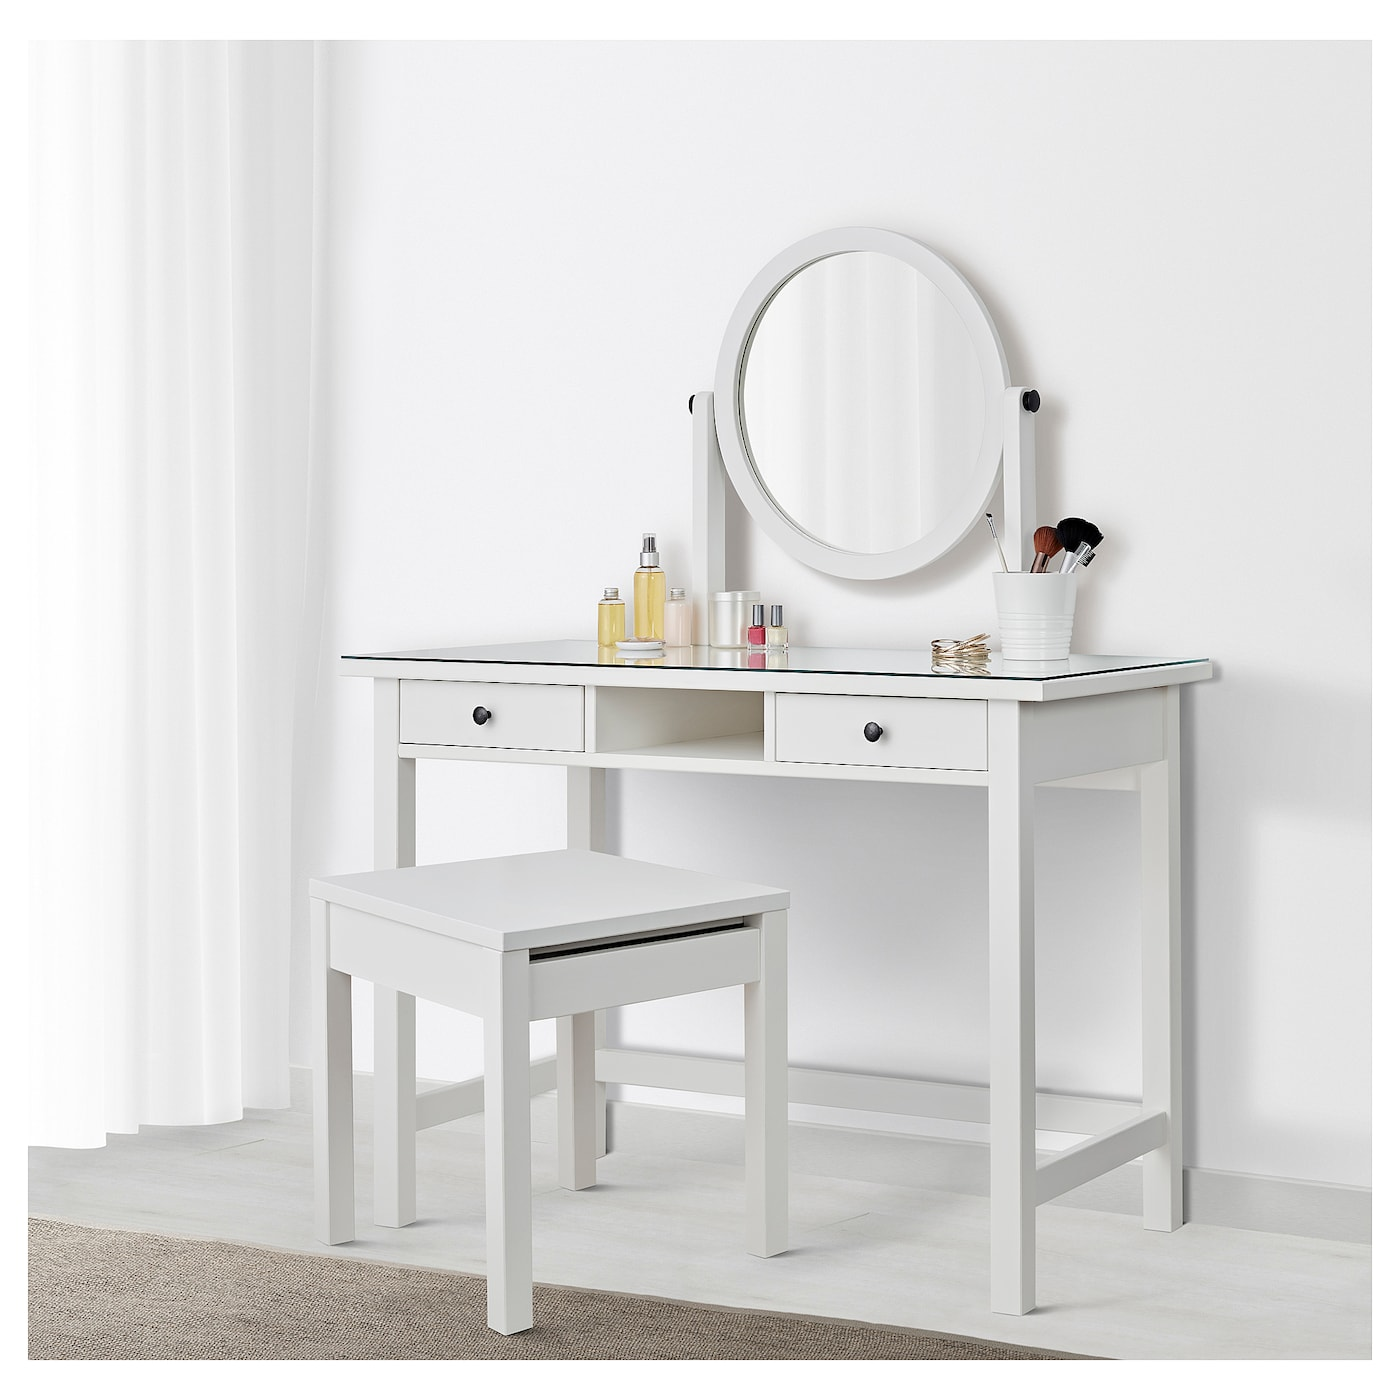 hemnes coiffeuse avec miroir blanc 110 x 45 cm ikea. Black Bedroom Furniture Sets. Home Design Ideas